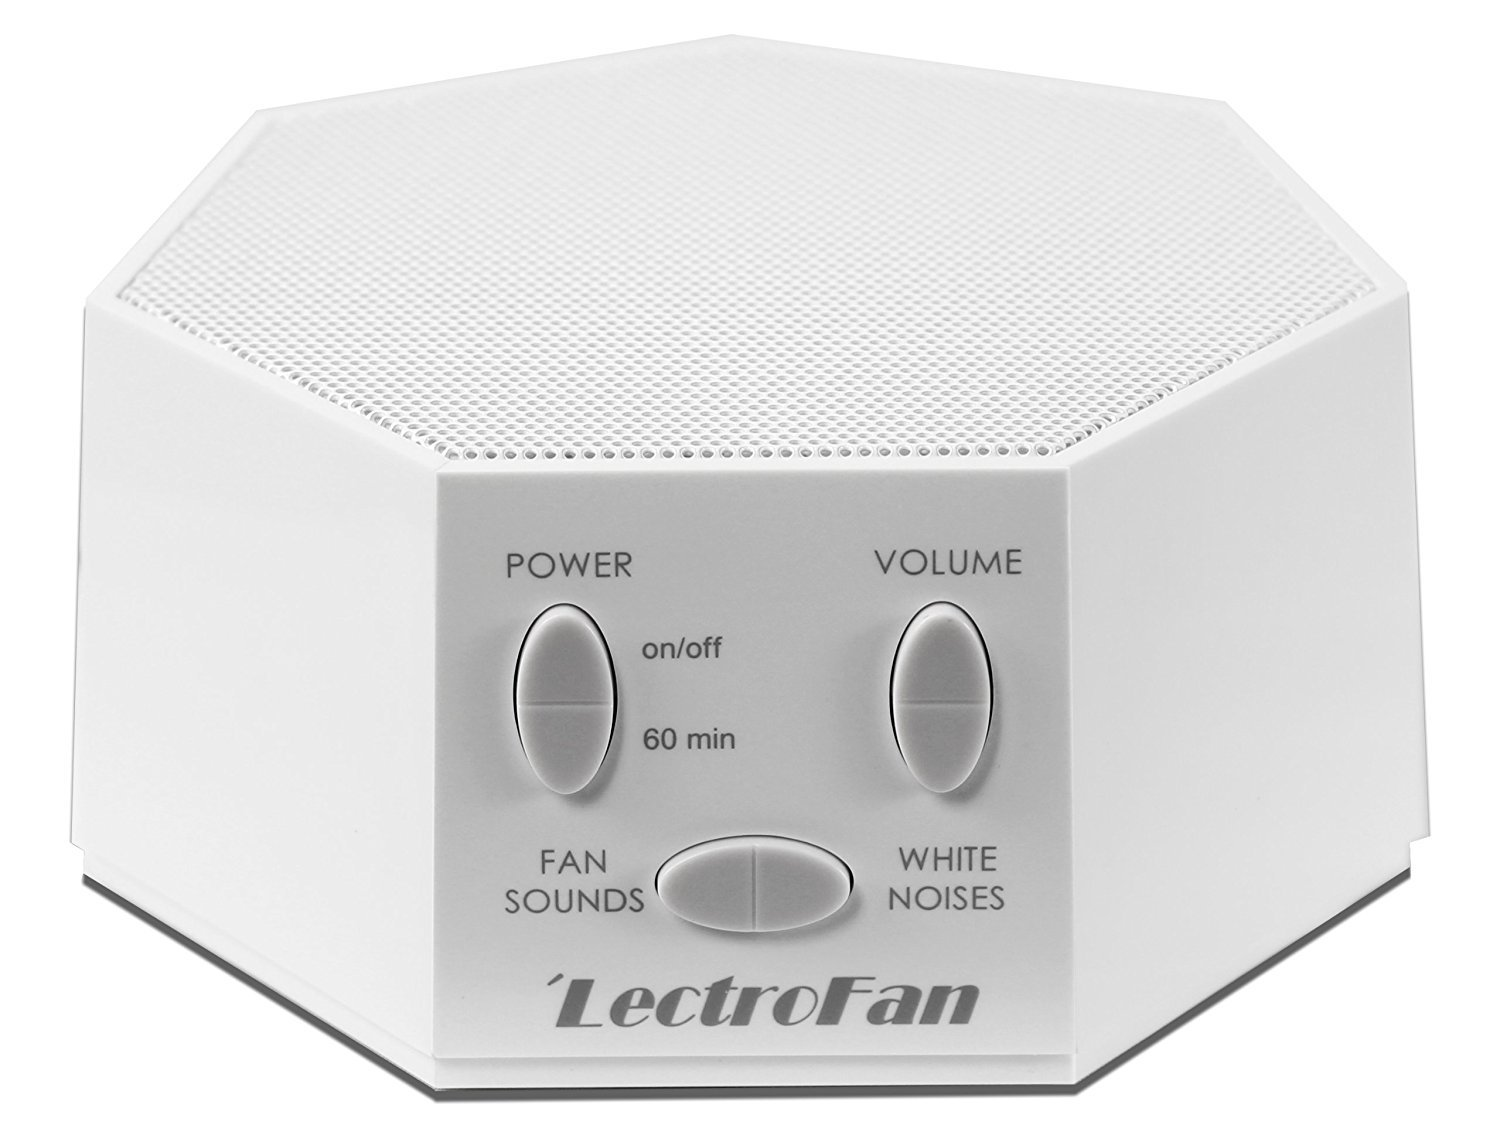 Top 5 White Noise Machine Options in 2020 - Reviews and Buying Guide 1